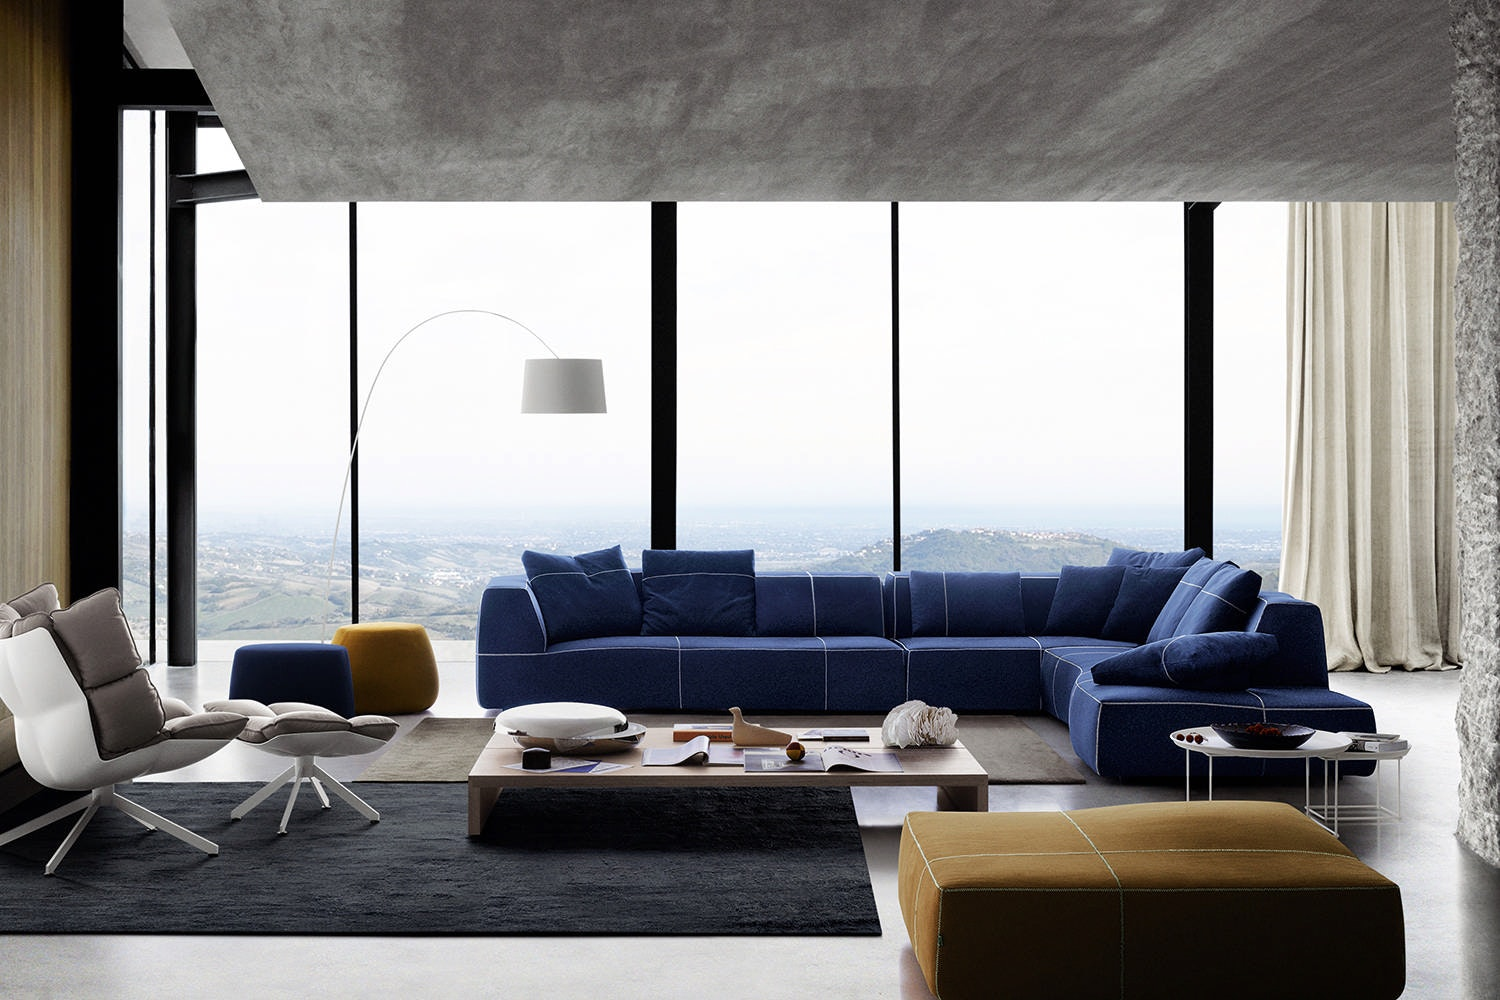 Bend-Sofa with Right Chaise by Patricia Urquiola for B&B Italia